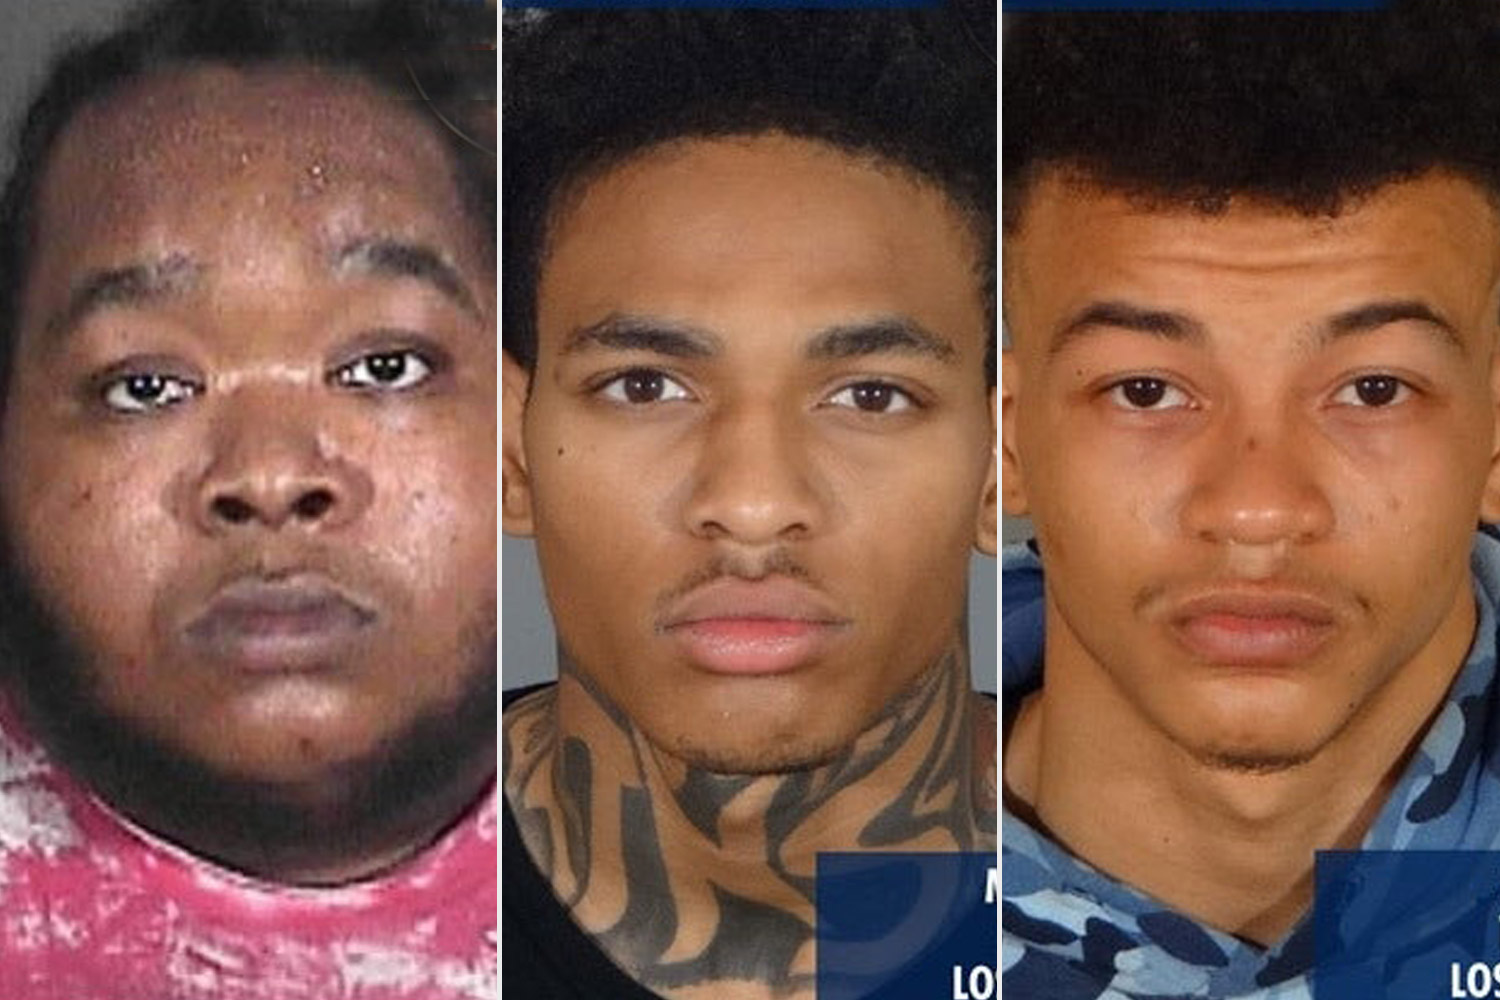 Malik Lamont Powell, 20 years old from Los Angeles, CA Khai McGhee, 18 years old from Los Angeles, CA Marquise Anthony Gordon, 30 years old from Los Angeles, CA